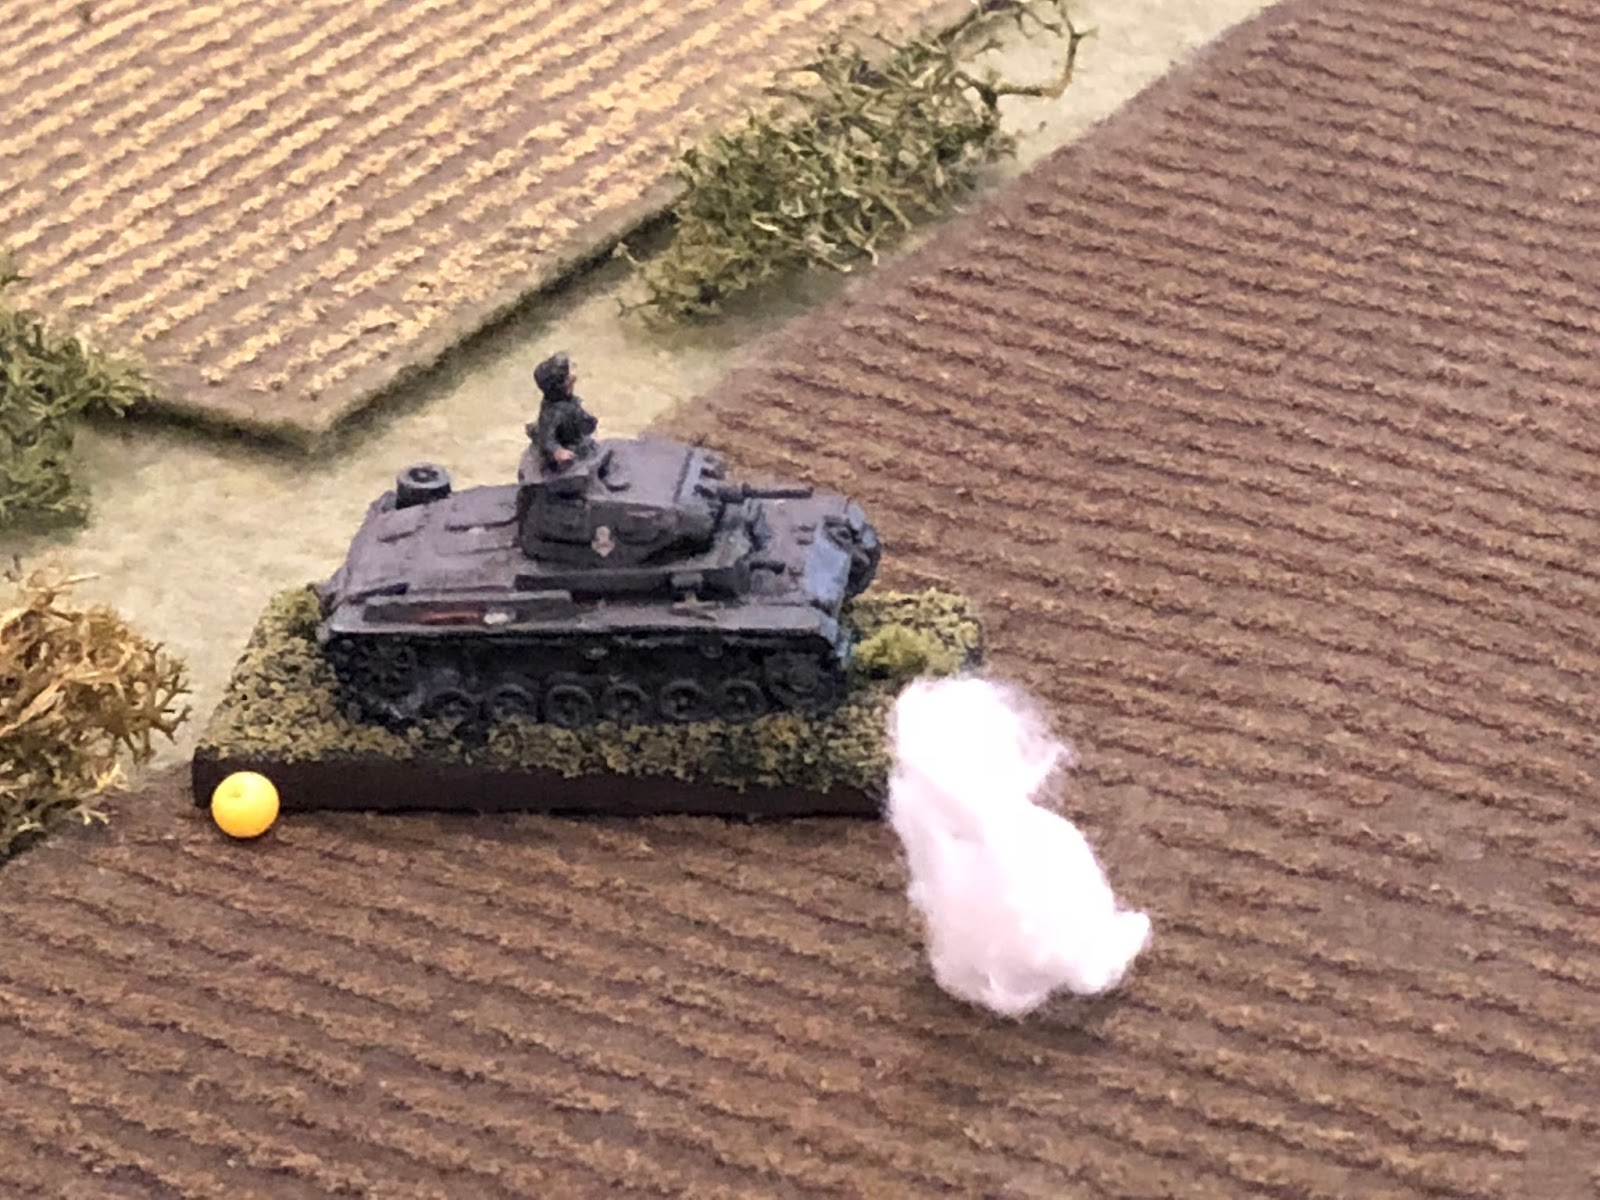 Again the German vehicle is rocked by a near miss, but they continue pushing forward.